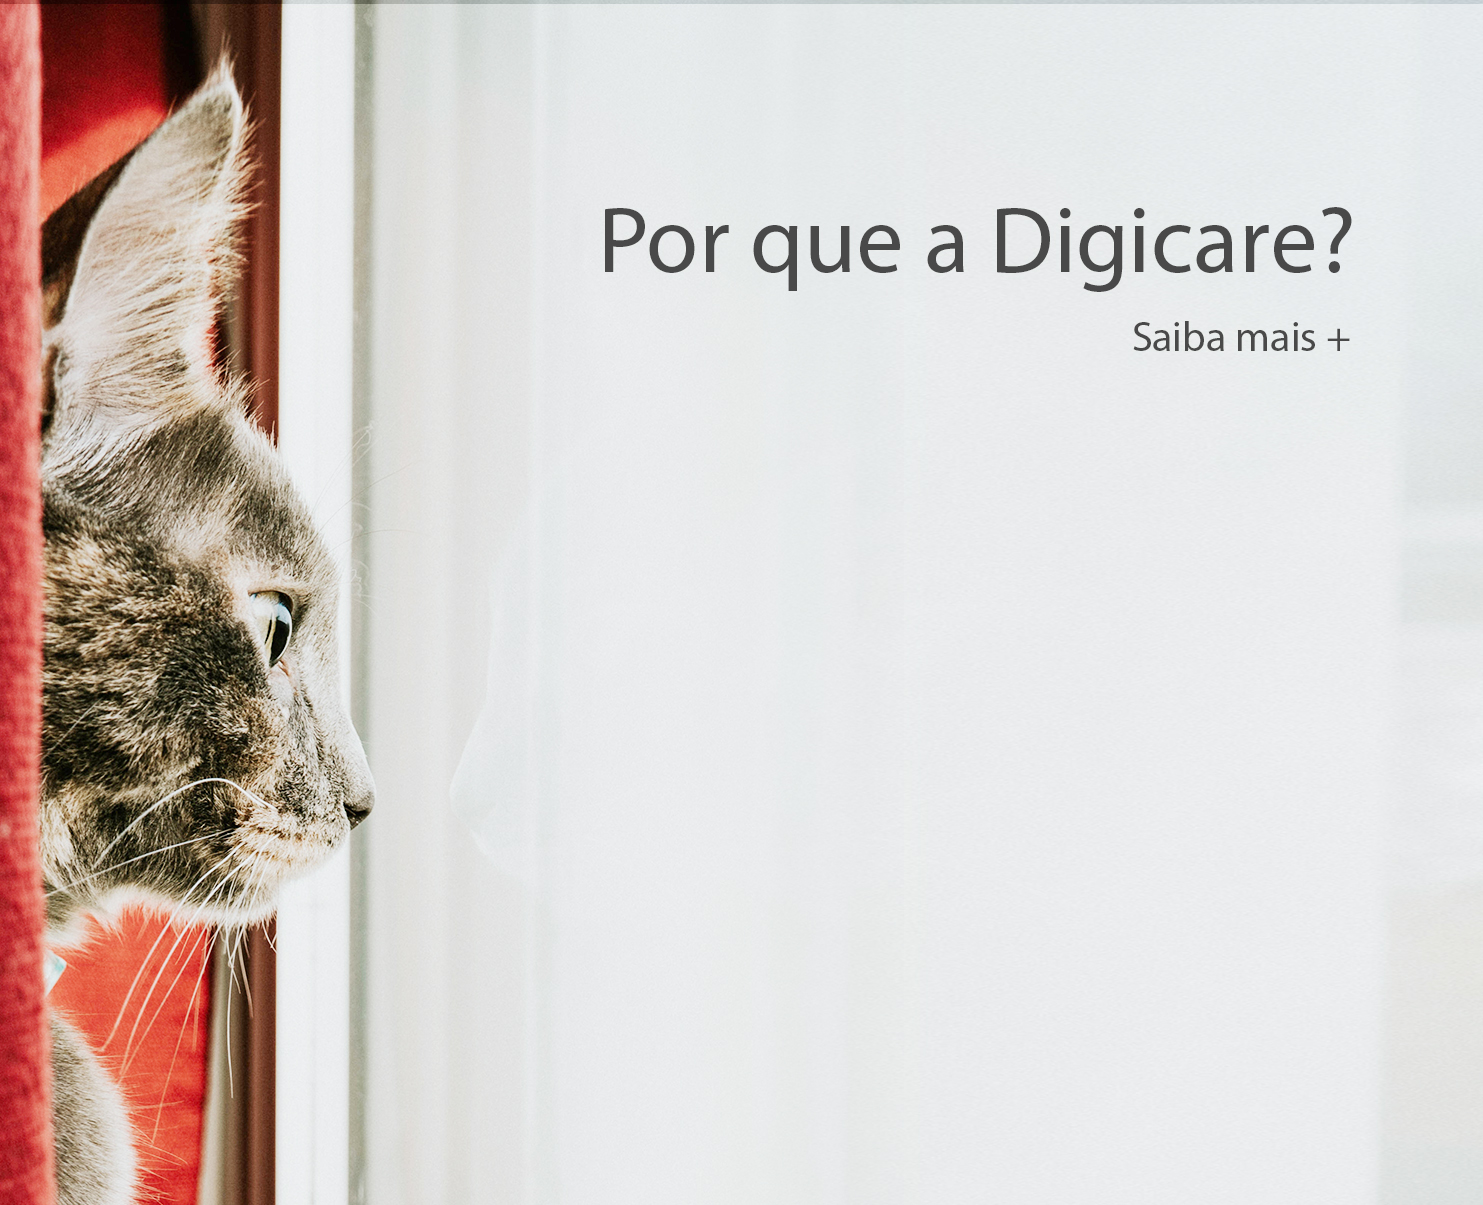 Why Digicare